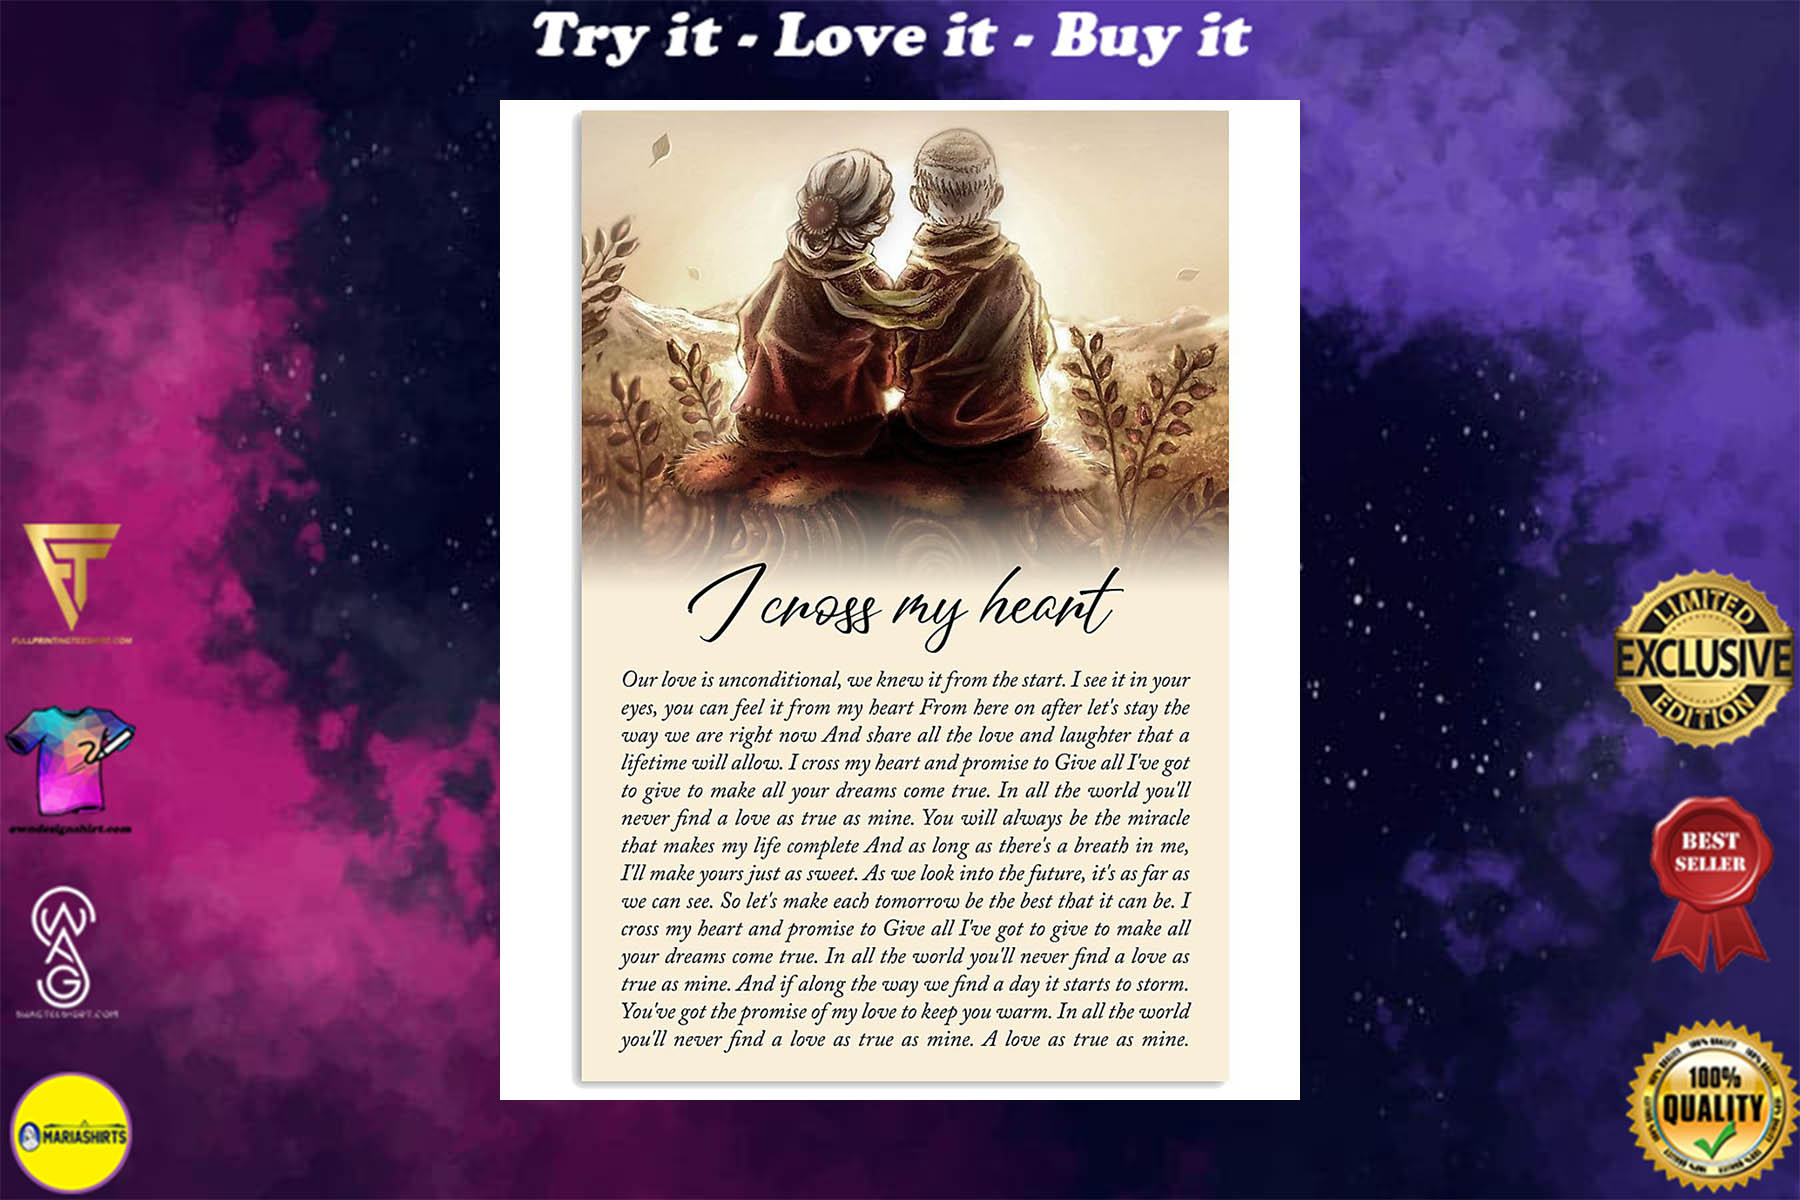 best selling products george strait i cross my heart lyrics couple in love poster